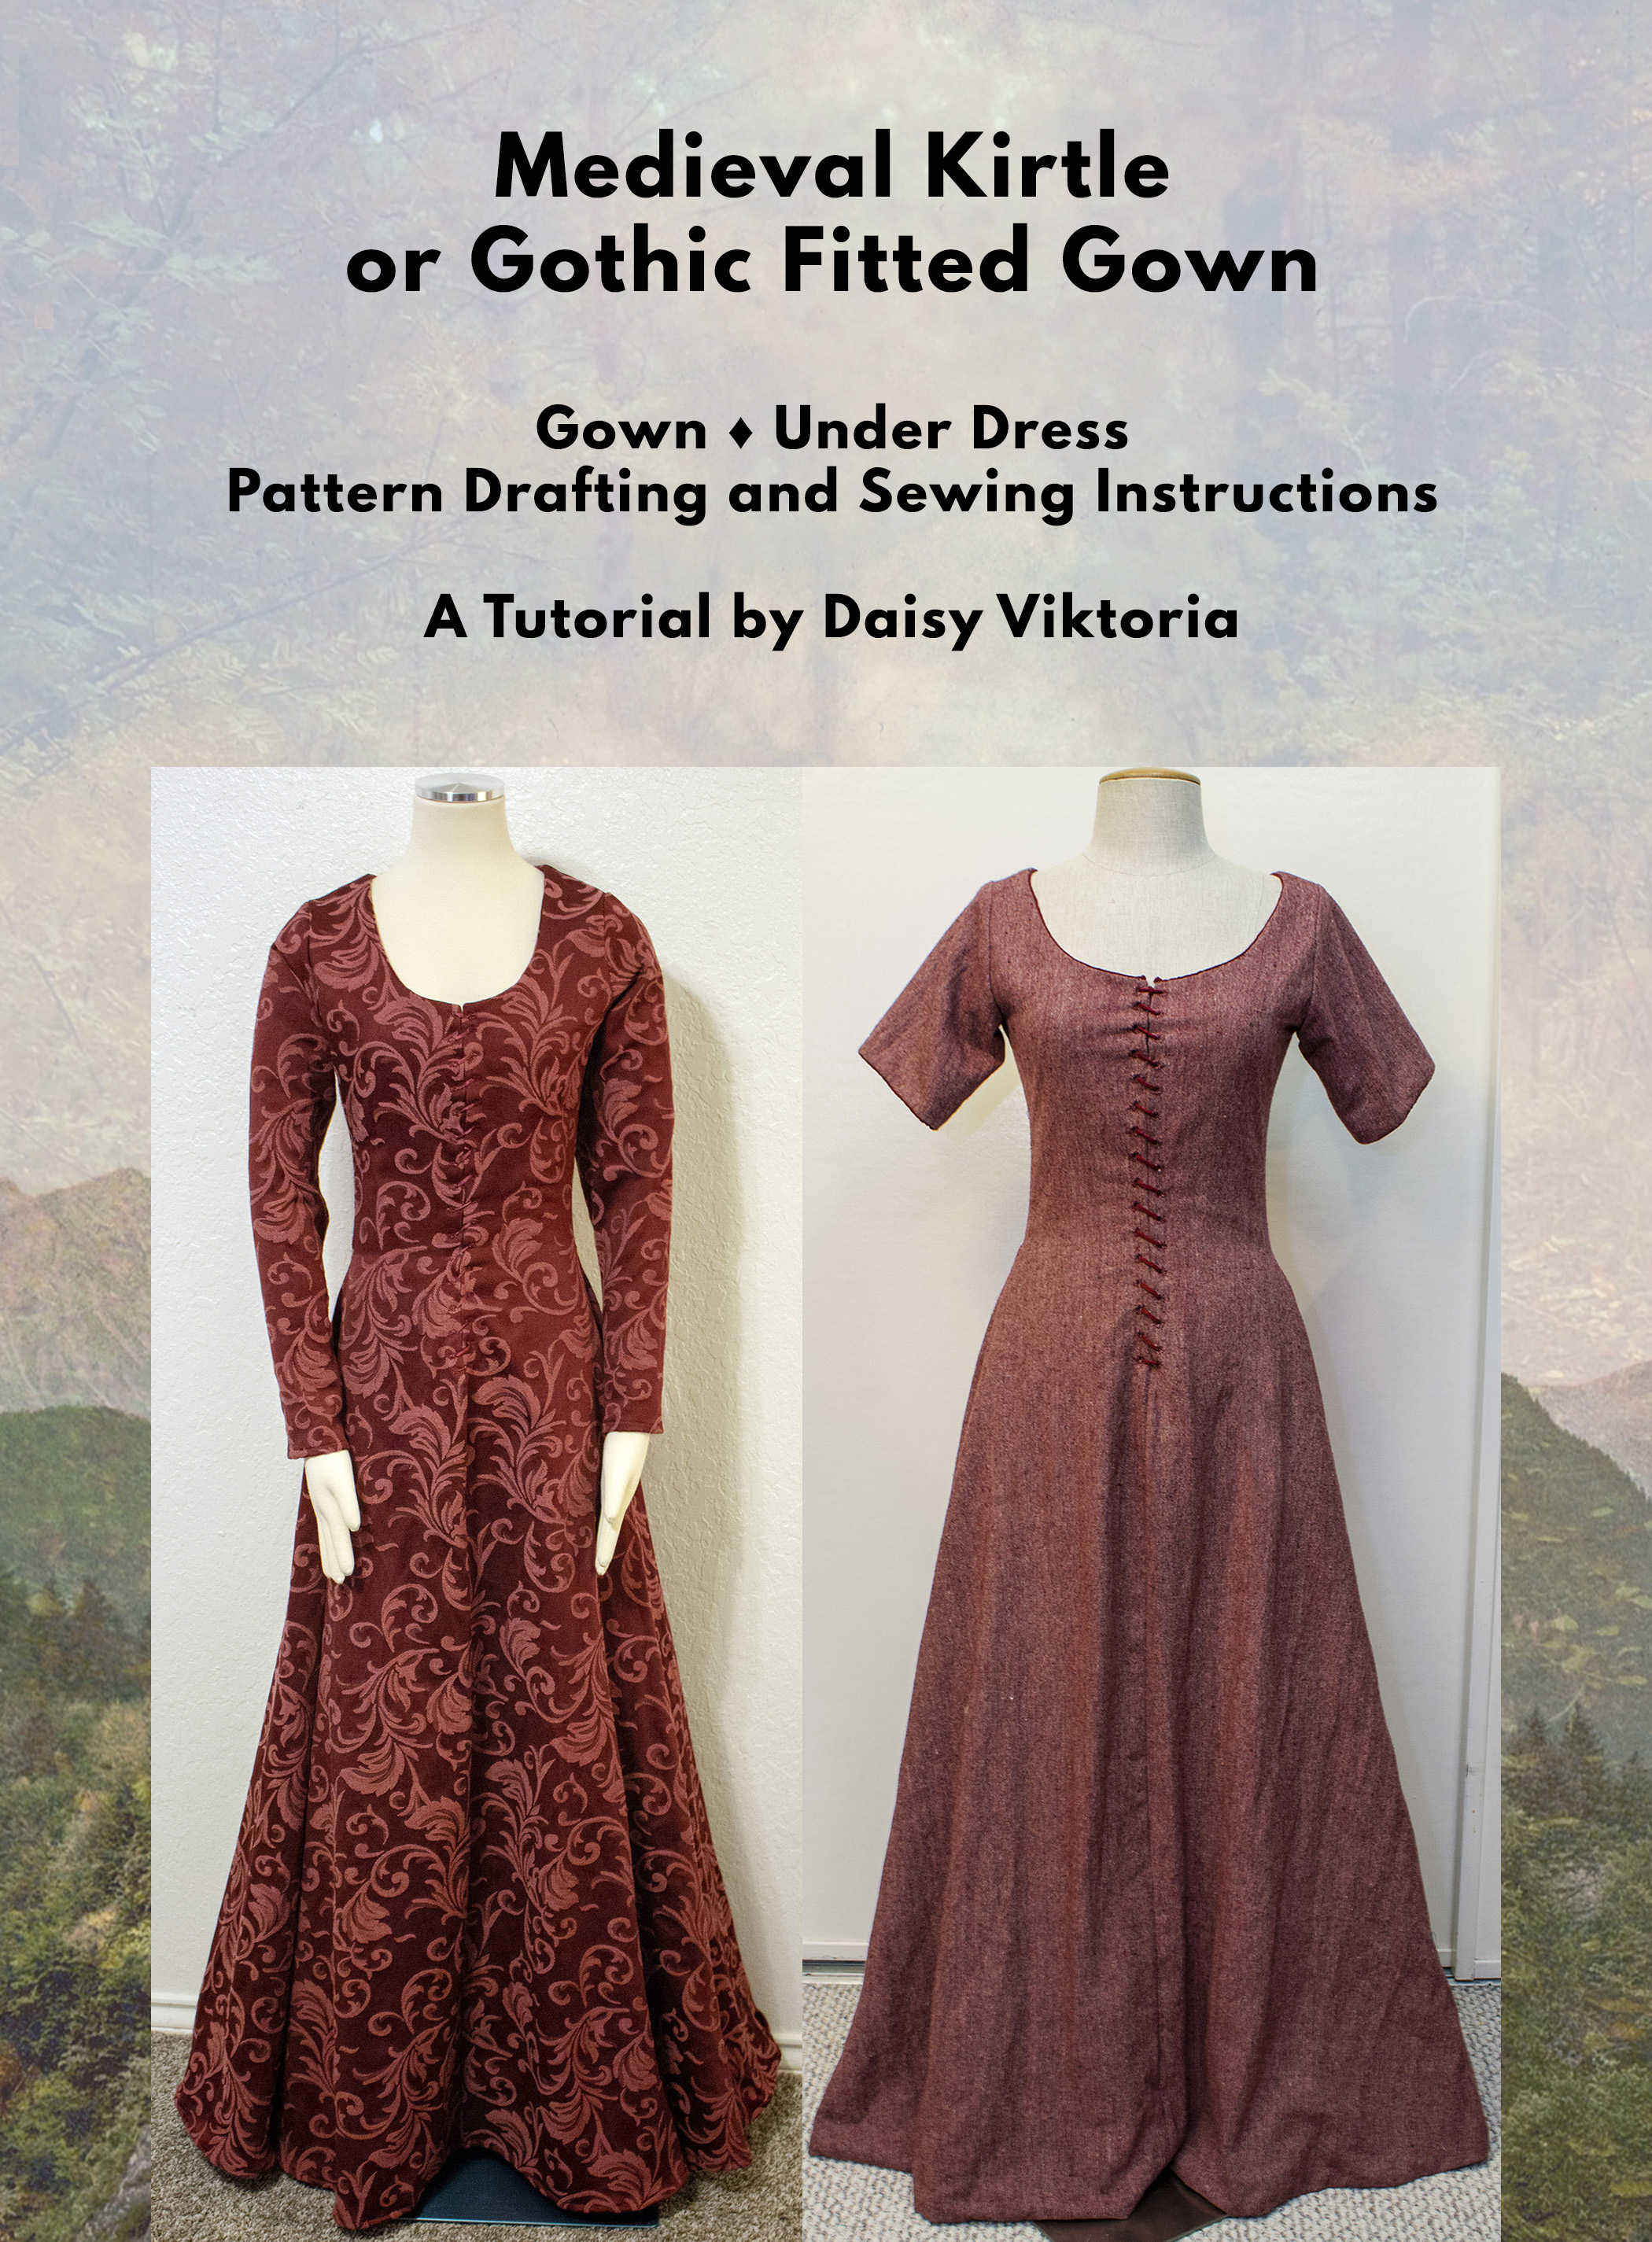 Medieval Dress - Kirtle, Cotehardie, Gothic Fitted Gown, 14th century SCA  garb - PDF Tutorial